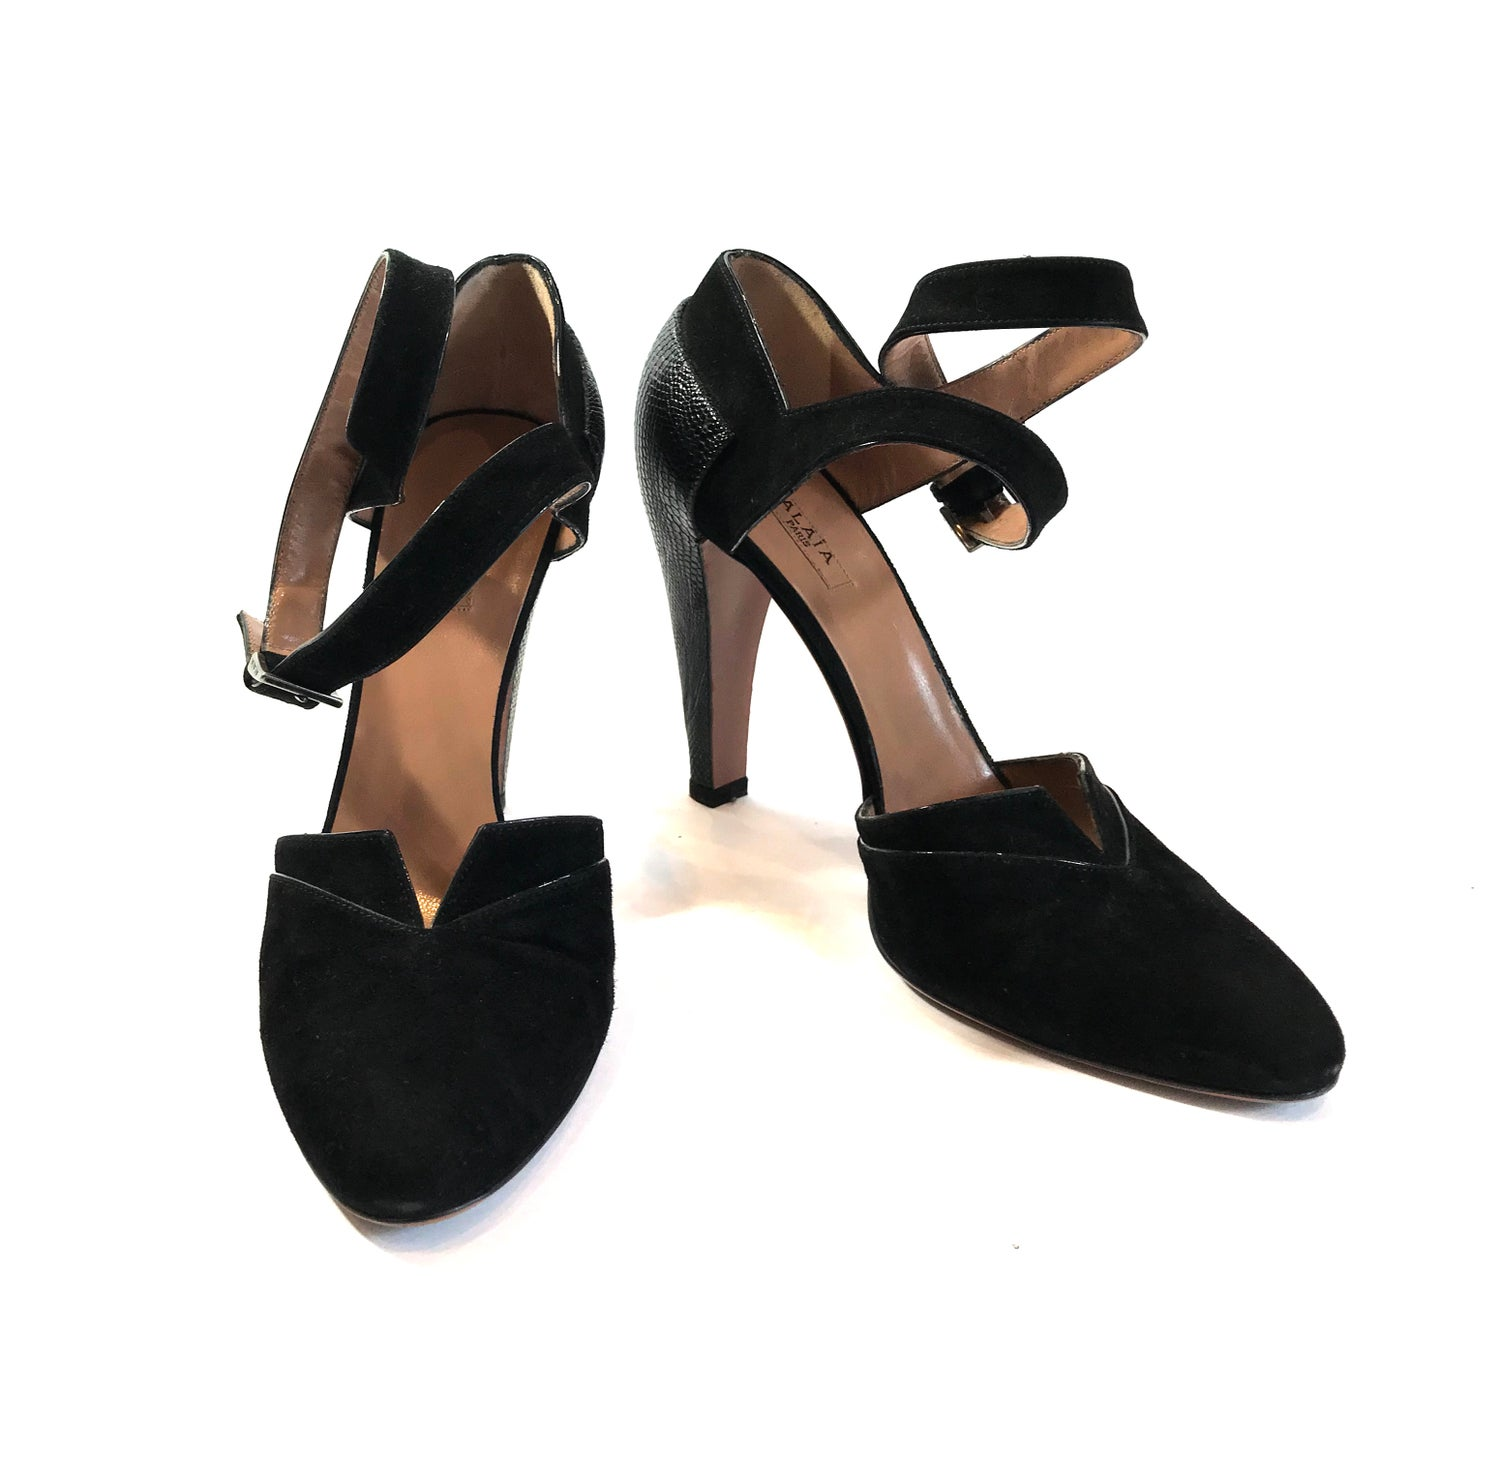 Image of Alaia Size 38 Shoes 273-406